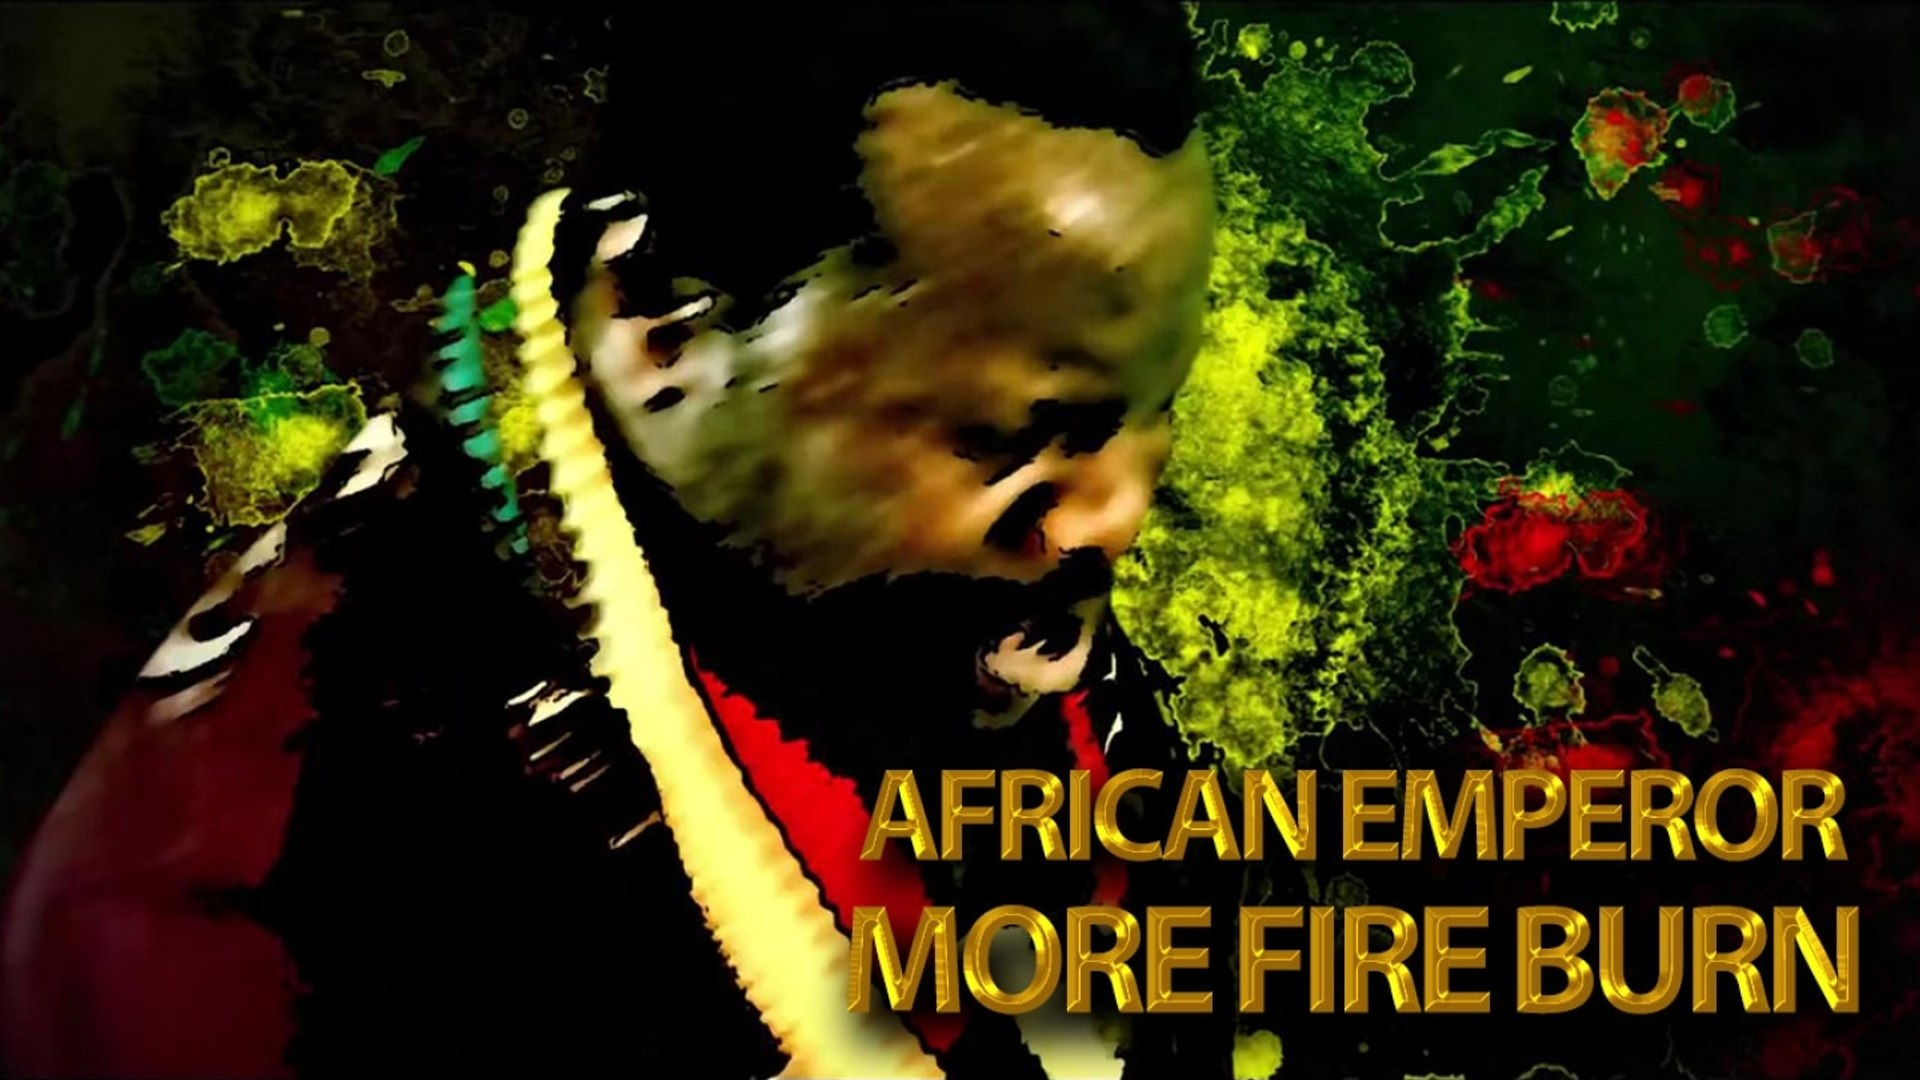 African Emperor - More Fire Burn - (Official Music Video)